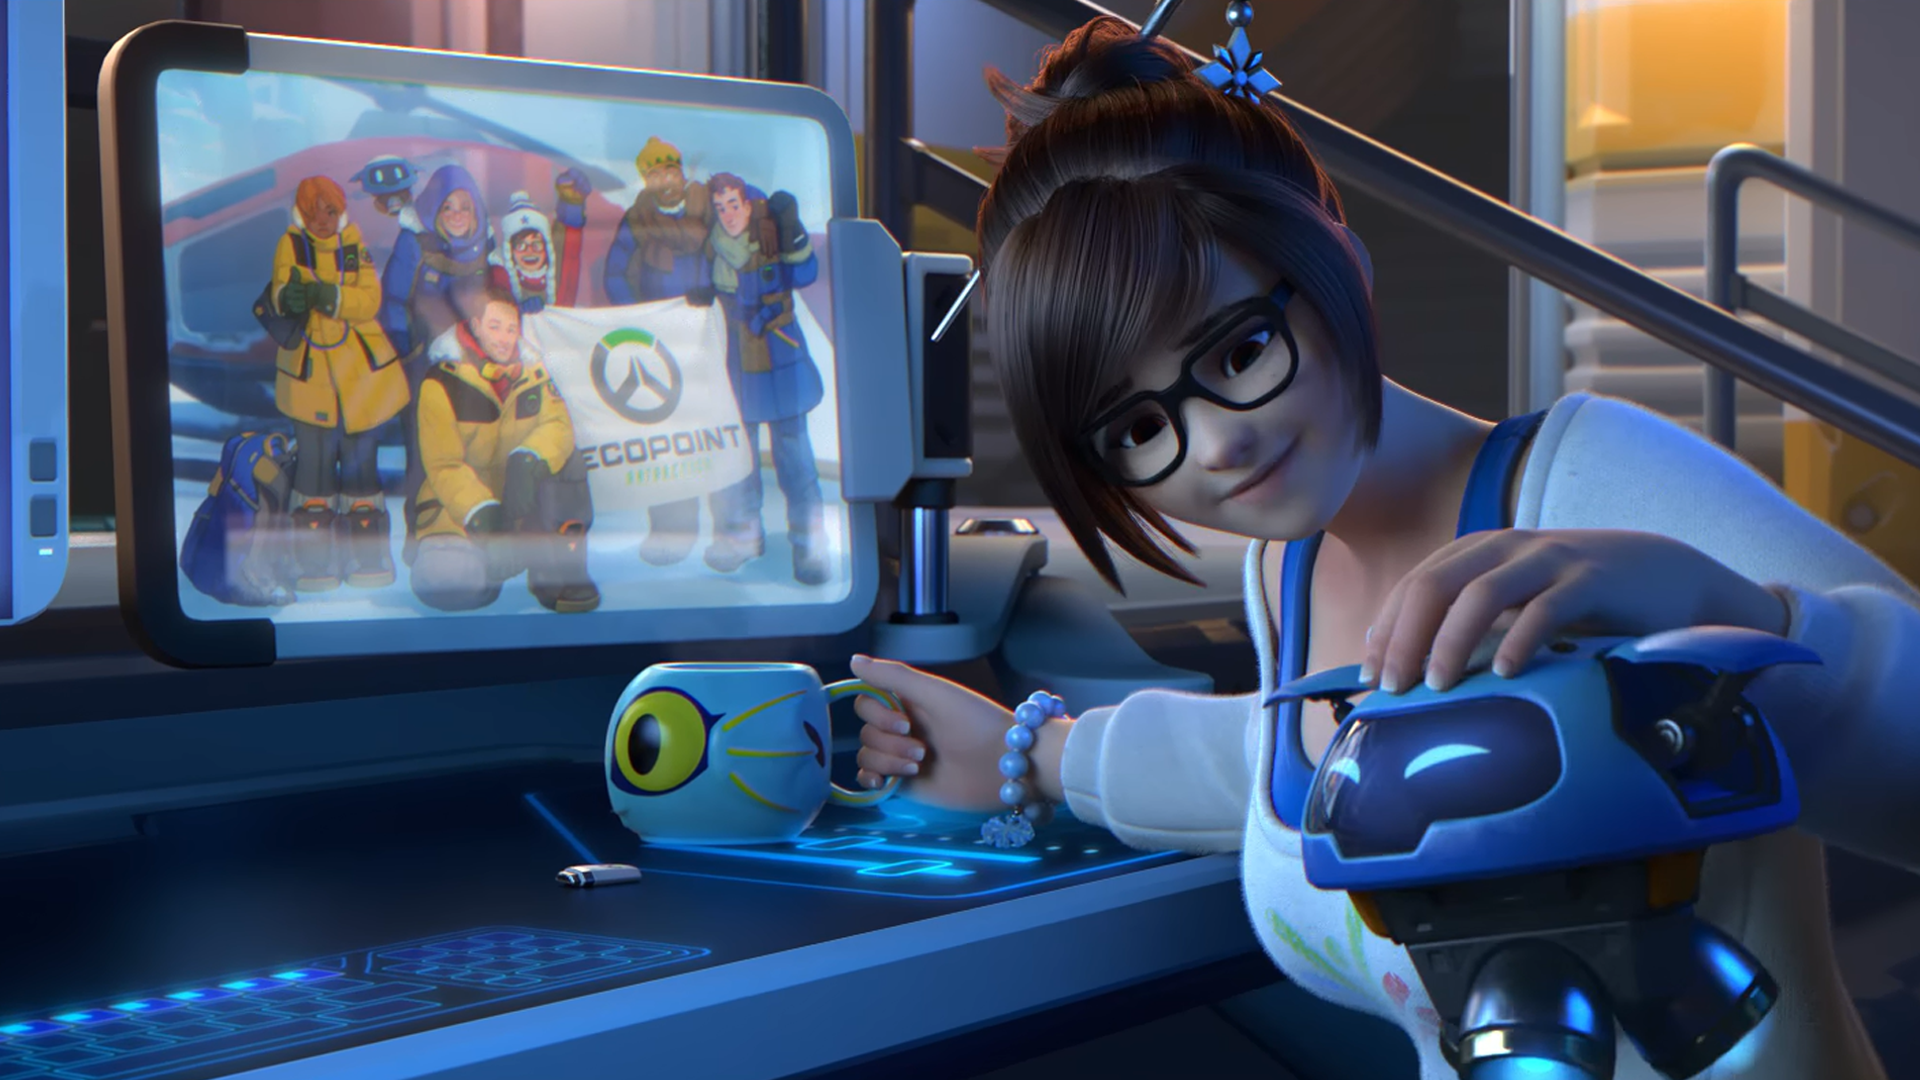 Iphone 7 Wallpaper Pinterest Overwatch Full Hd Wallpaper And Background Image